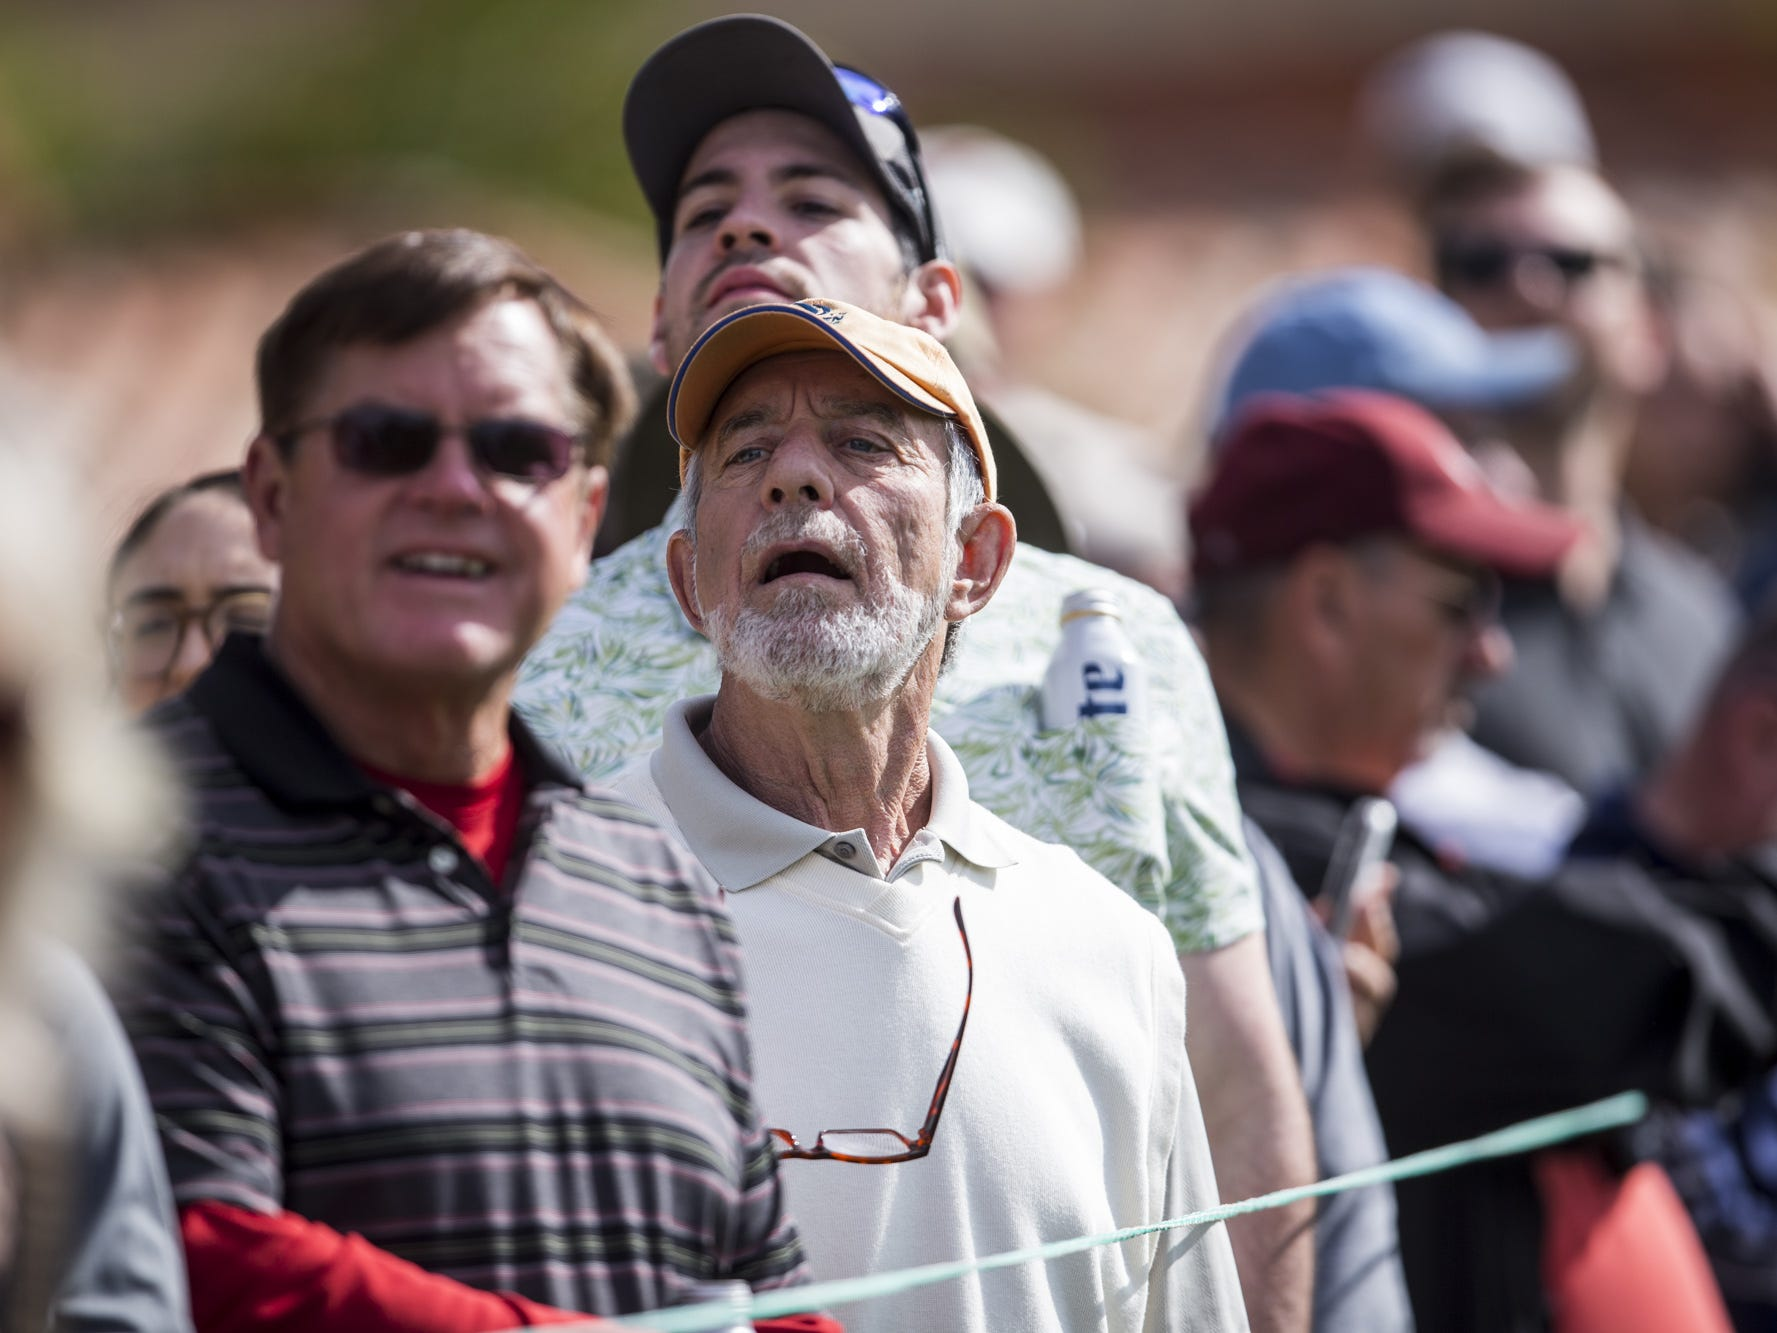 Fans watch at the 1st hole during the Waste Management Phoenix Open on Thursday, Jan. 31, 2019, at TPC Scottsdale in Scottsdale, Ariz.